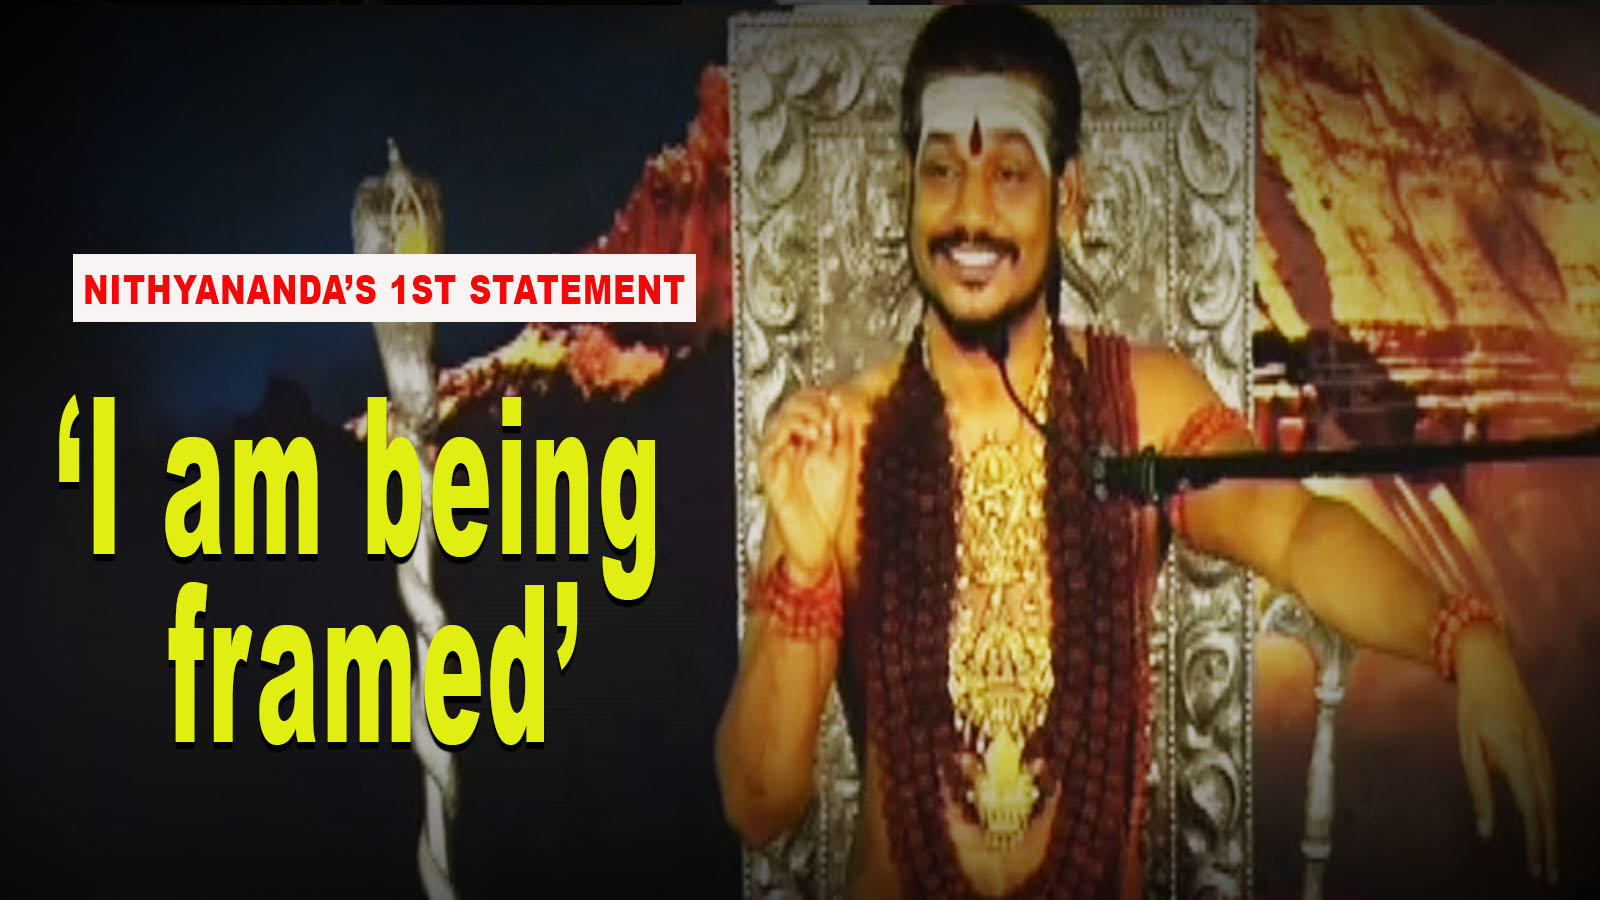 conspiracy-against-me-says-self-styled-godman-nithyananda